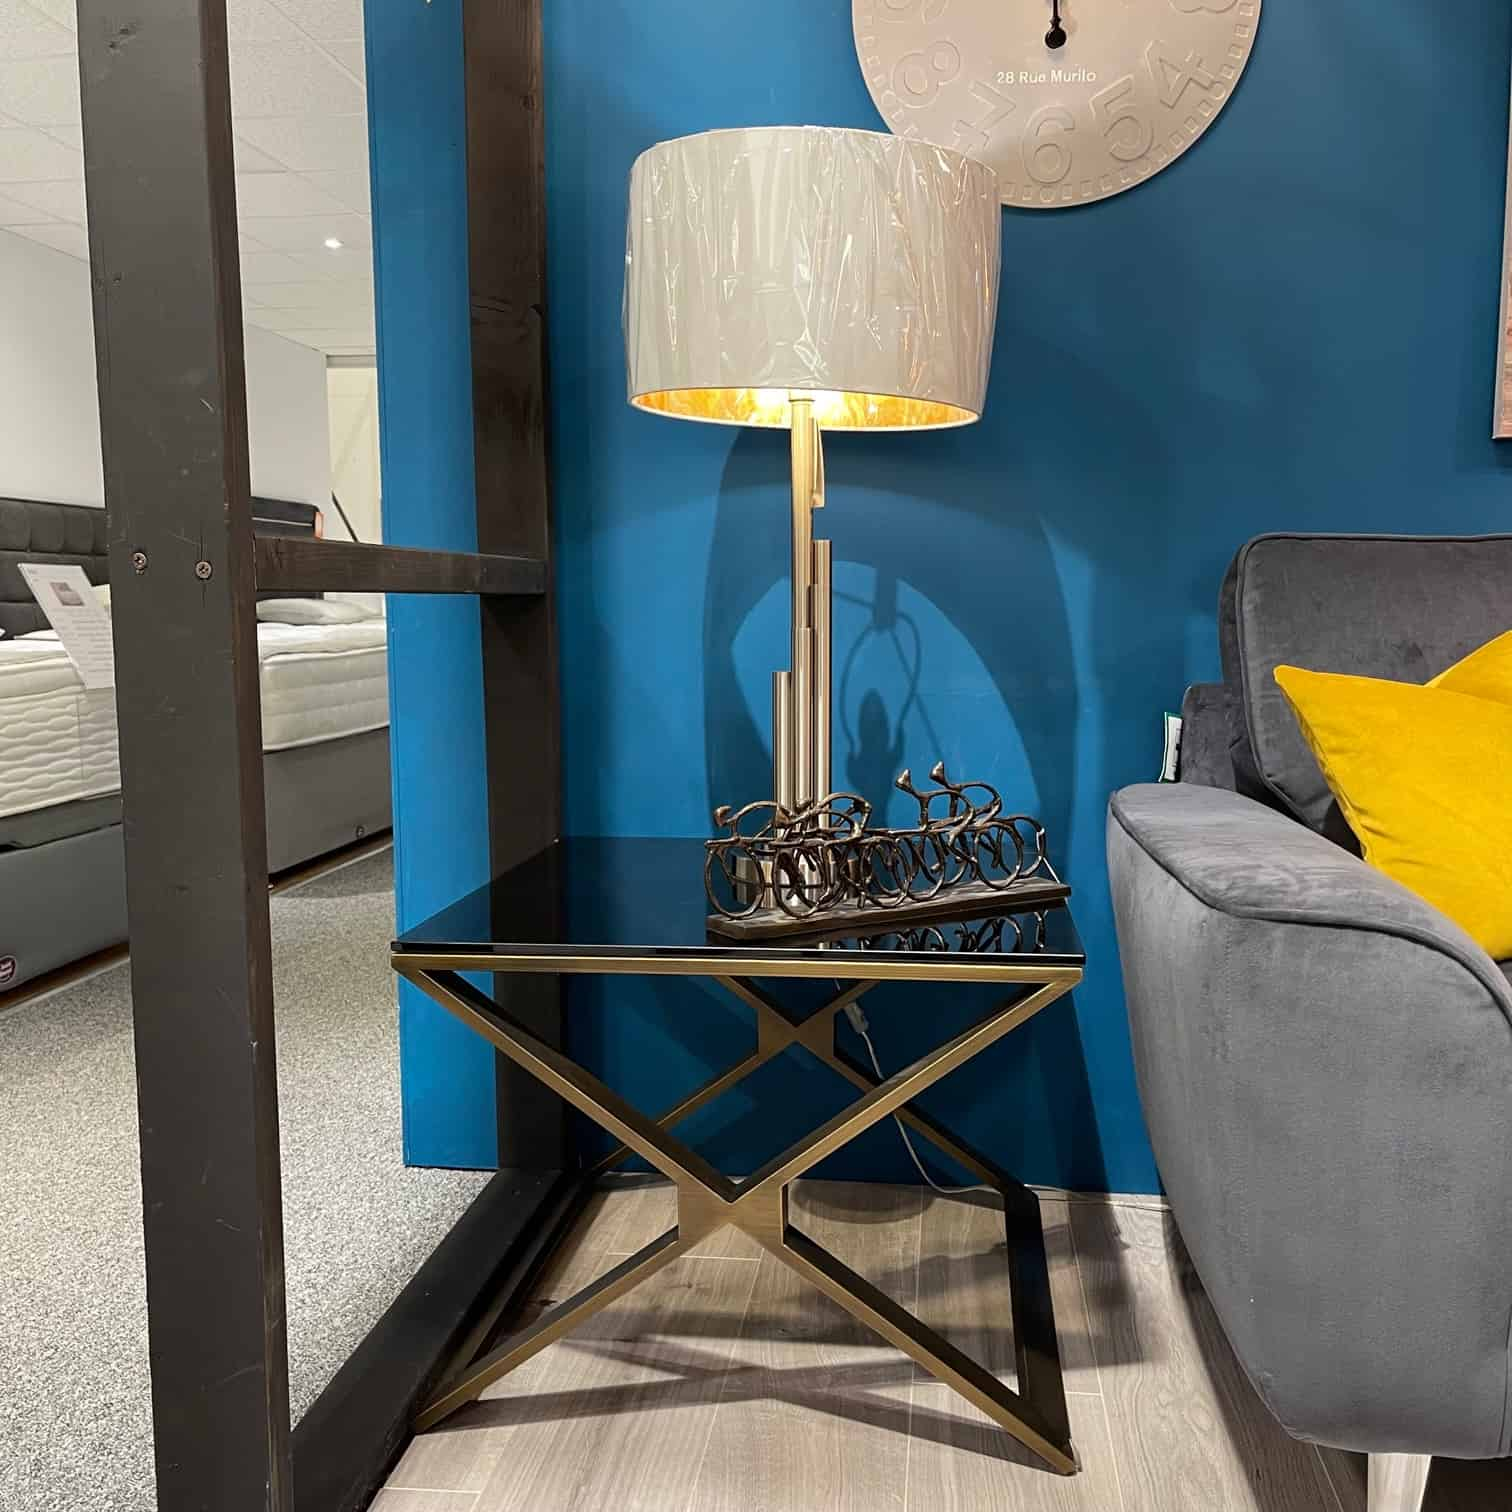 Transforming Rooms with Lifestyle Furniture